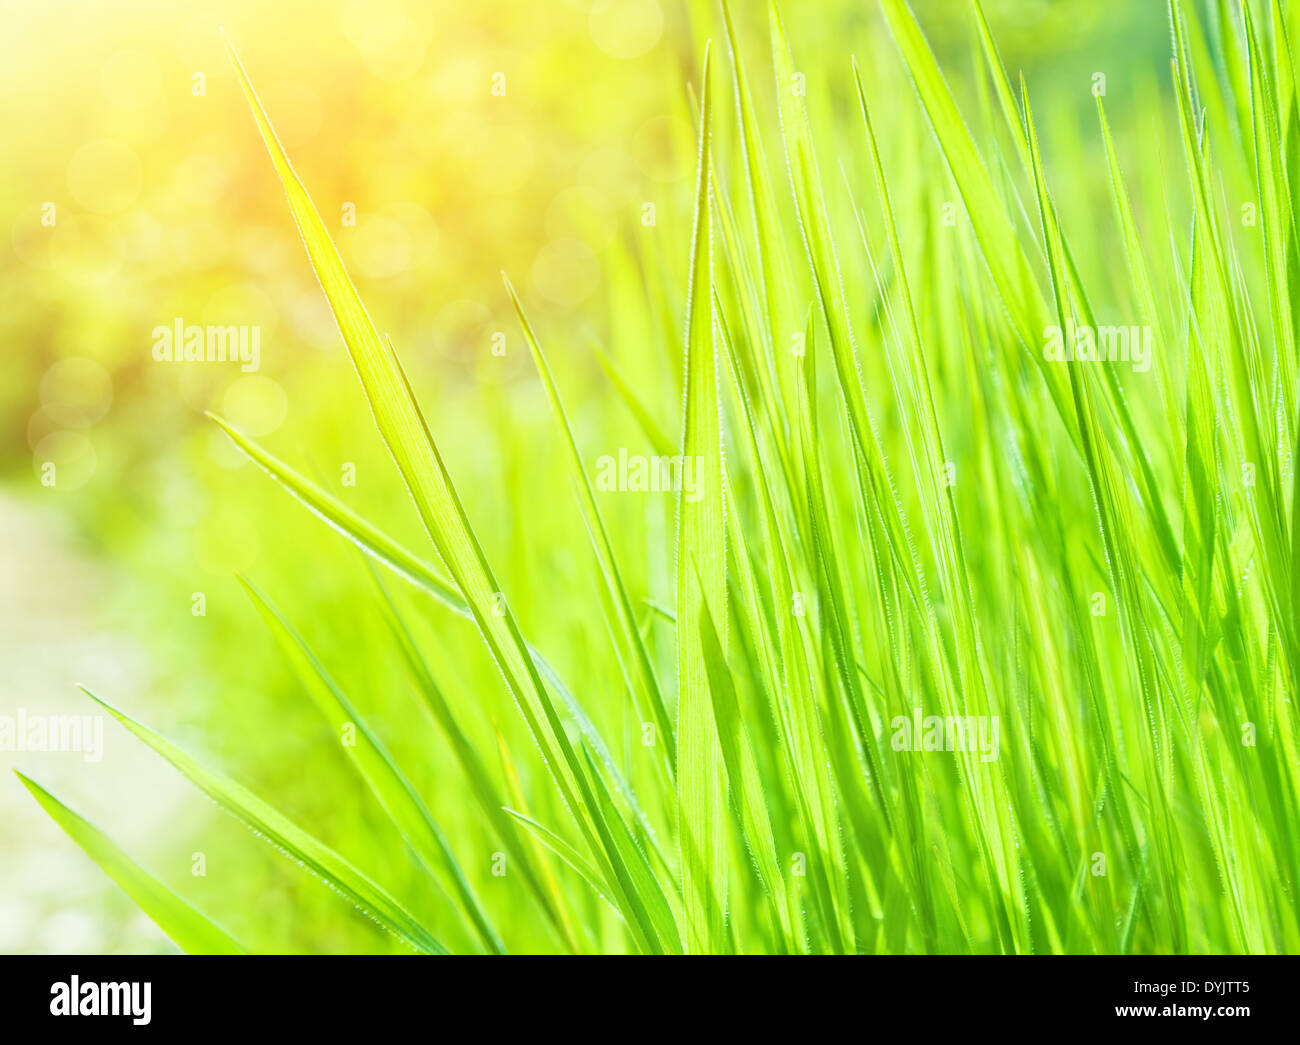 Fresh Green Grass Background Beautiful Grassy Field Abstract Floral Wallpaper Spring Time Nature